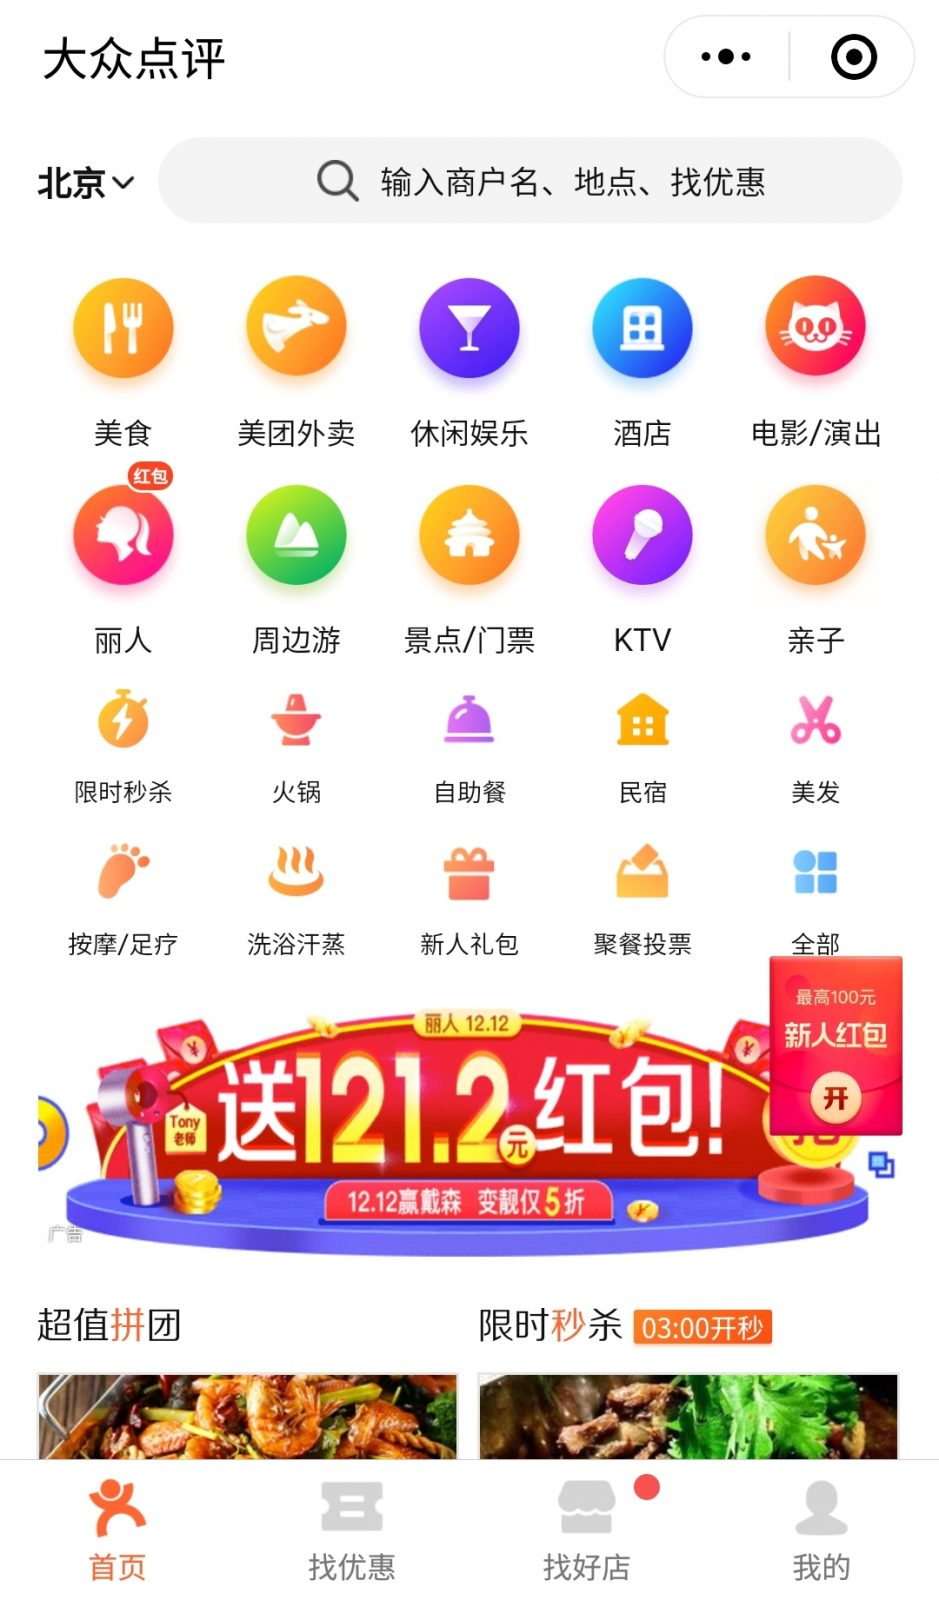 Dazhong Dianping android ios wechat 大众点评 按掉 苹果 微信